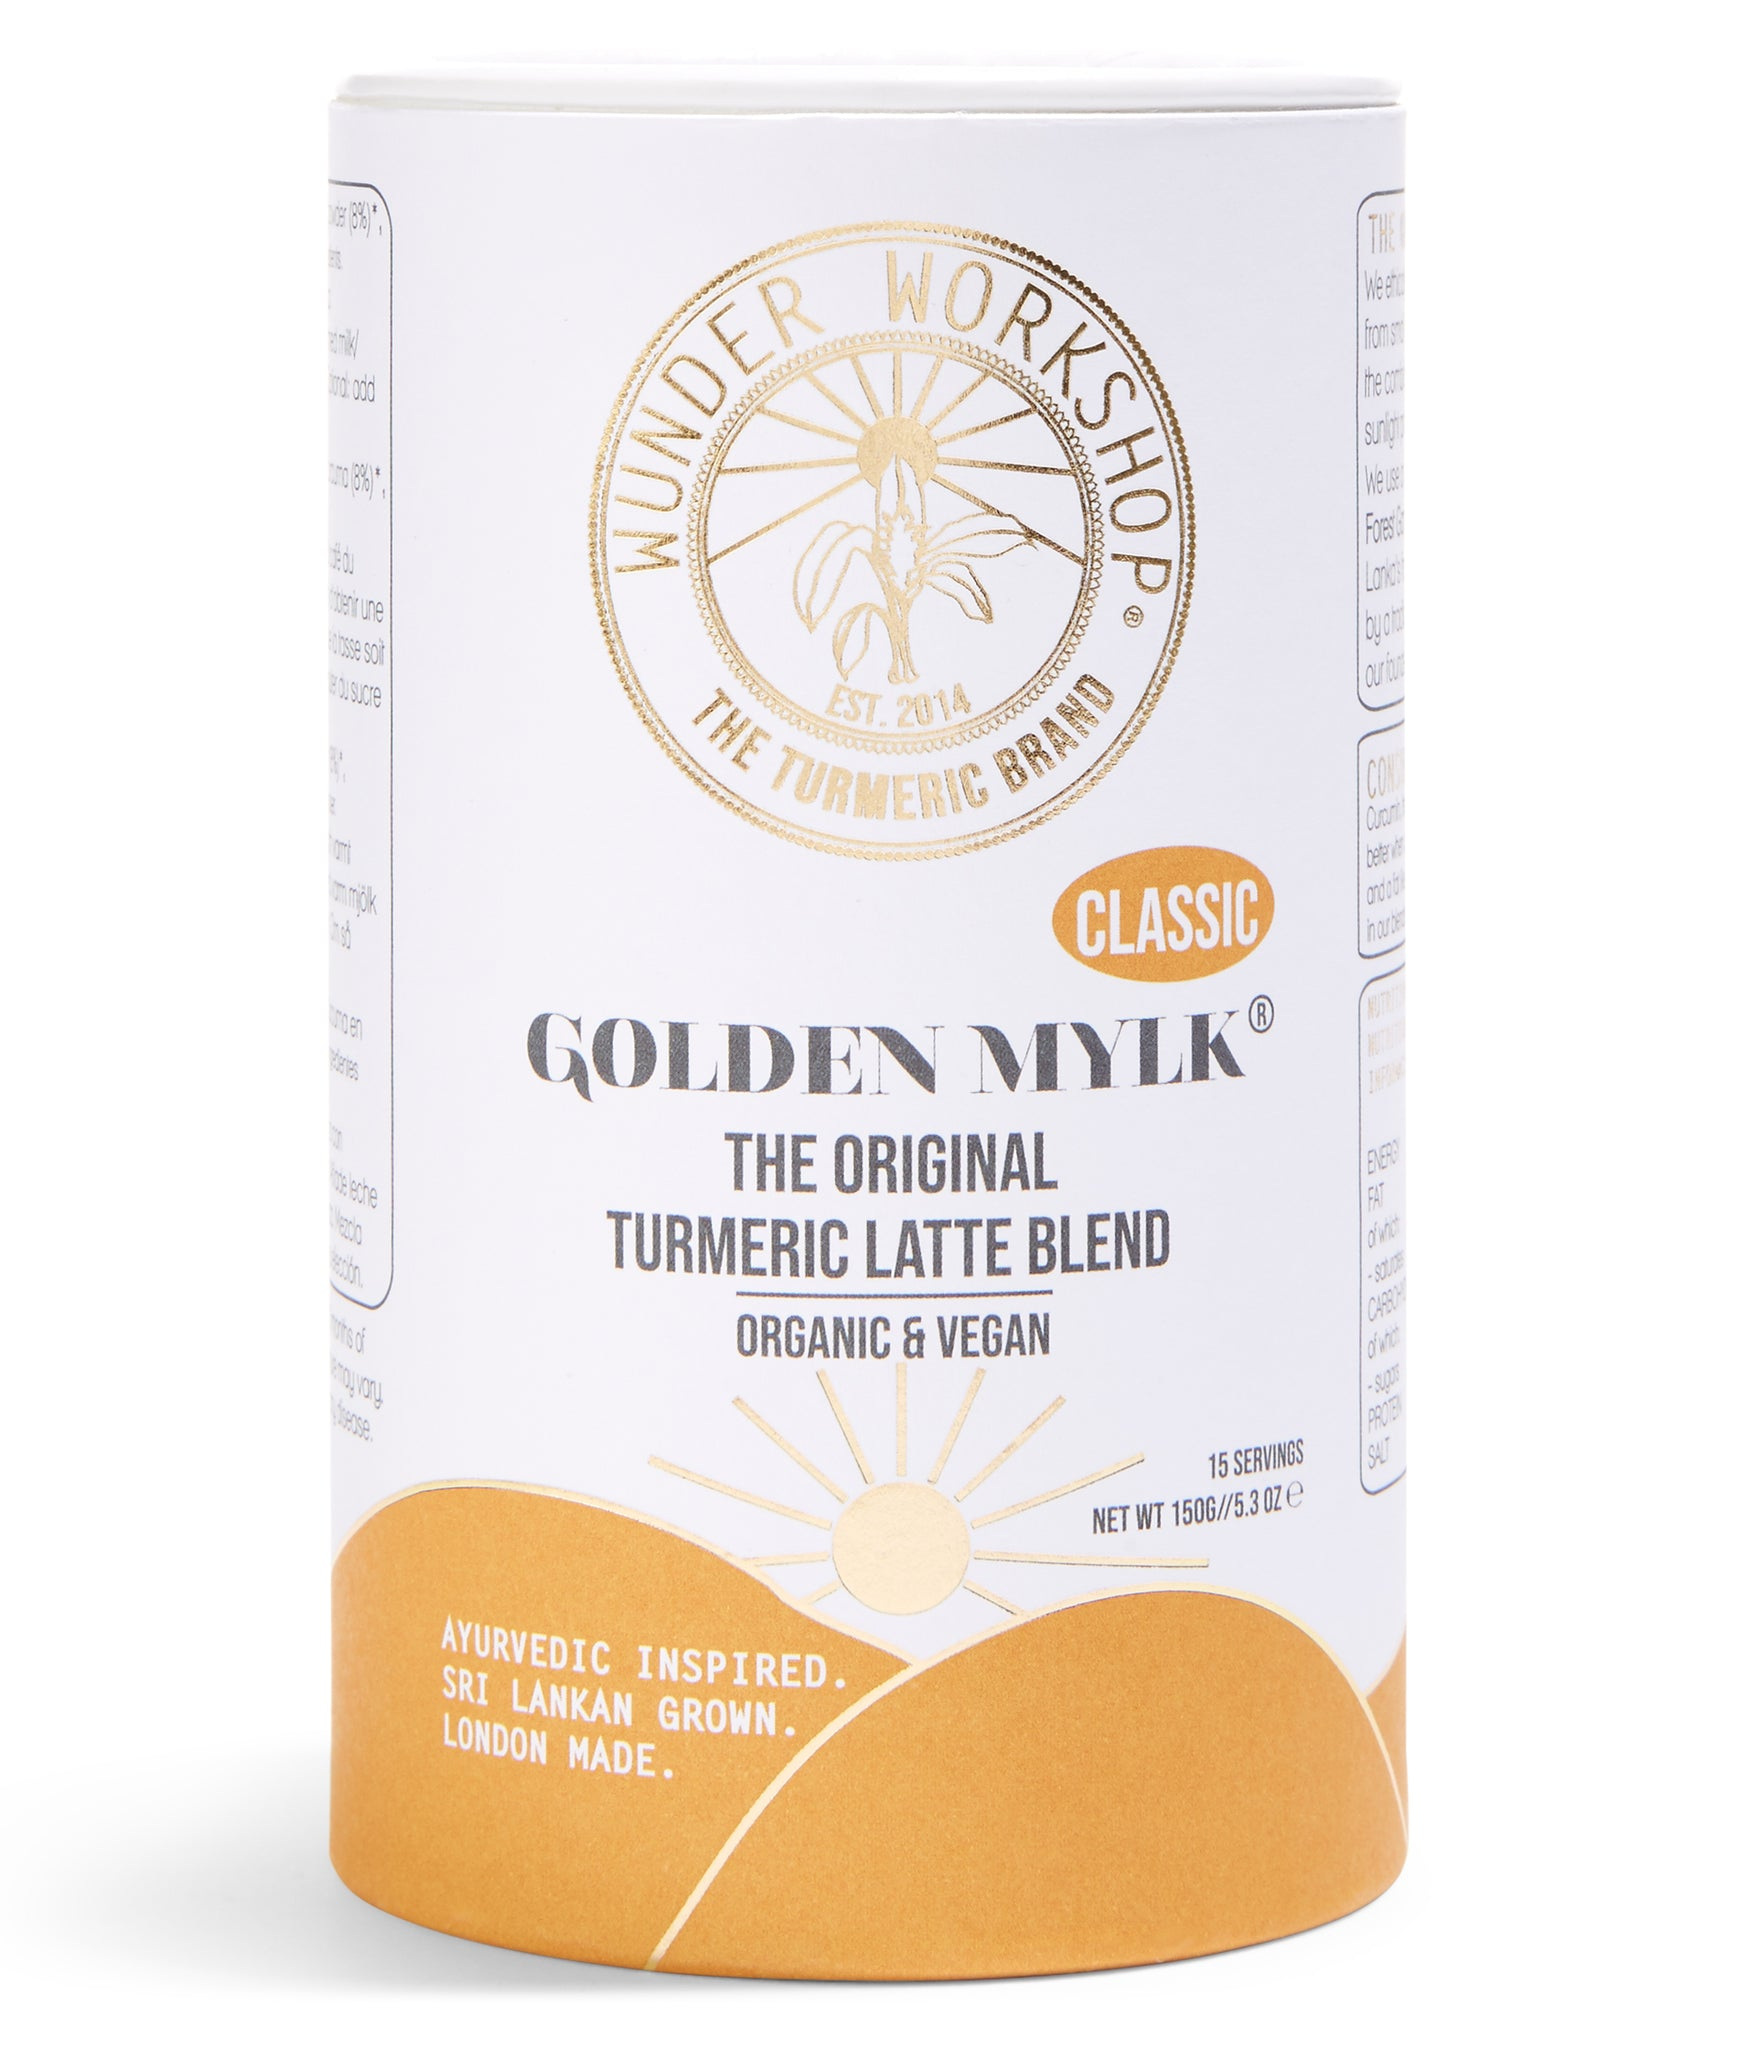 Wunder Workshop Golden Mylk Turmeric Latte Blend - 150g